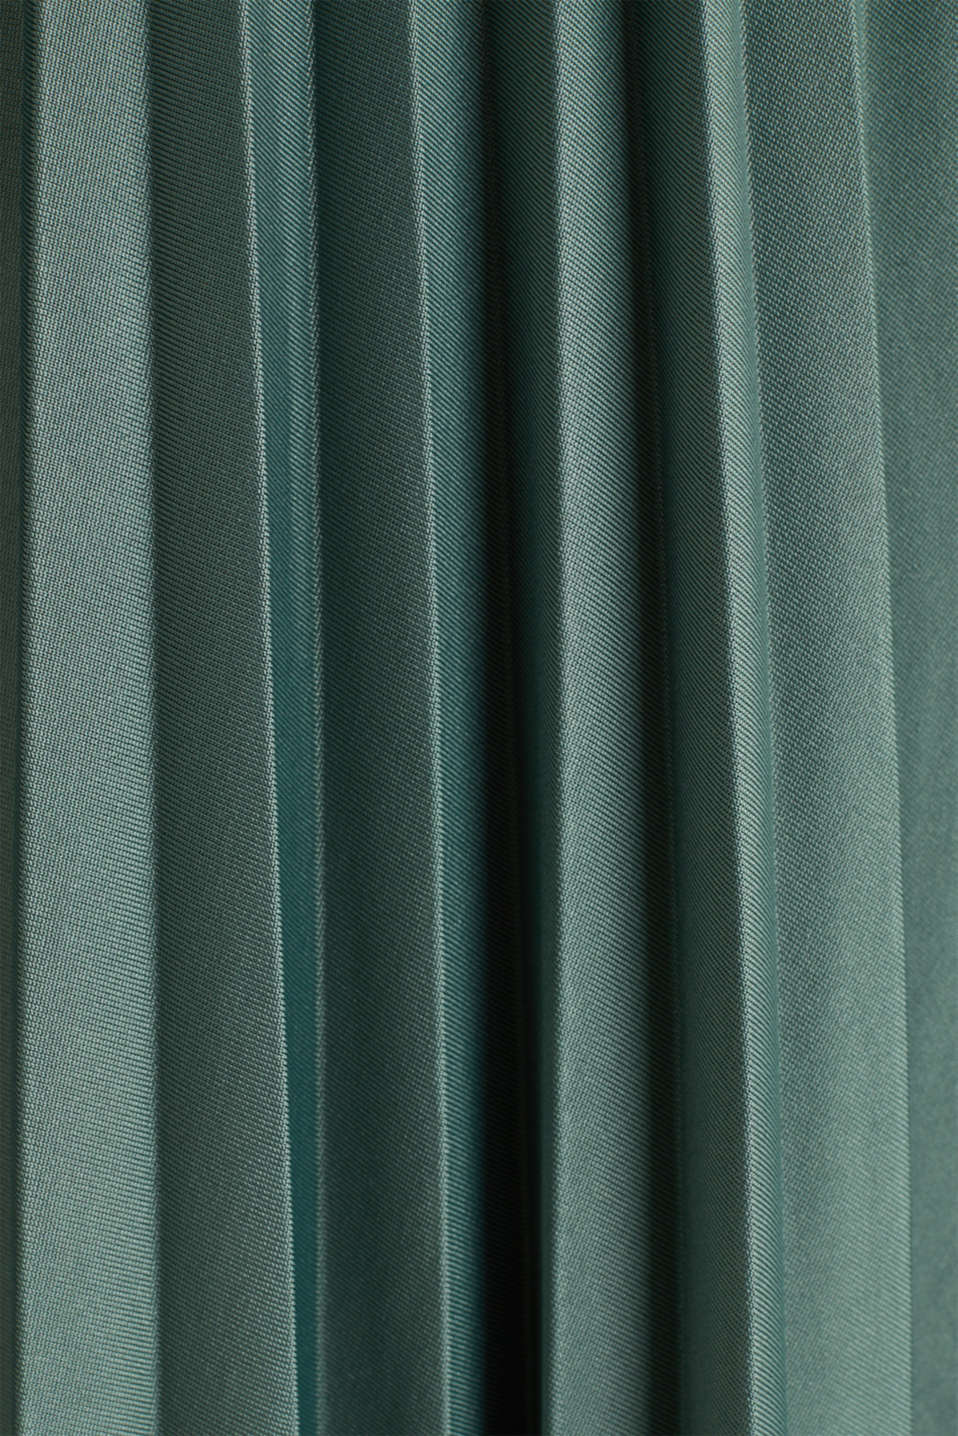 Stretch jersey skirt with accordion pleats, KHAKI GREEN, detail image number 4